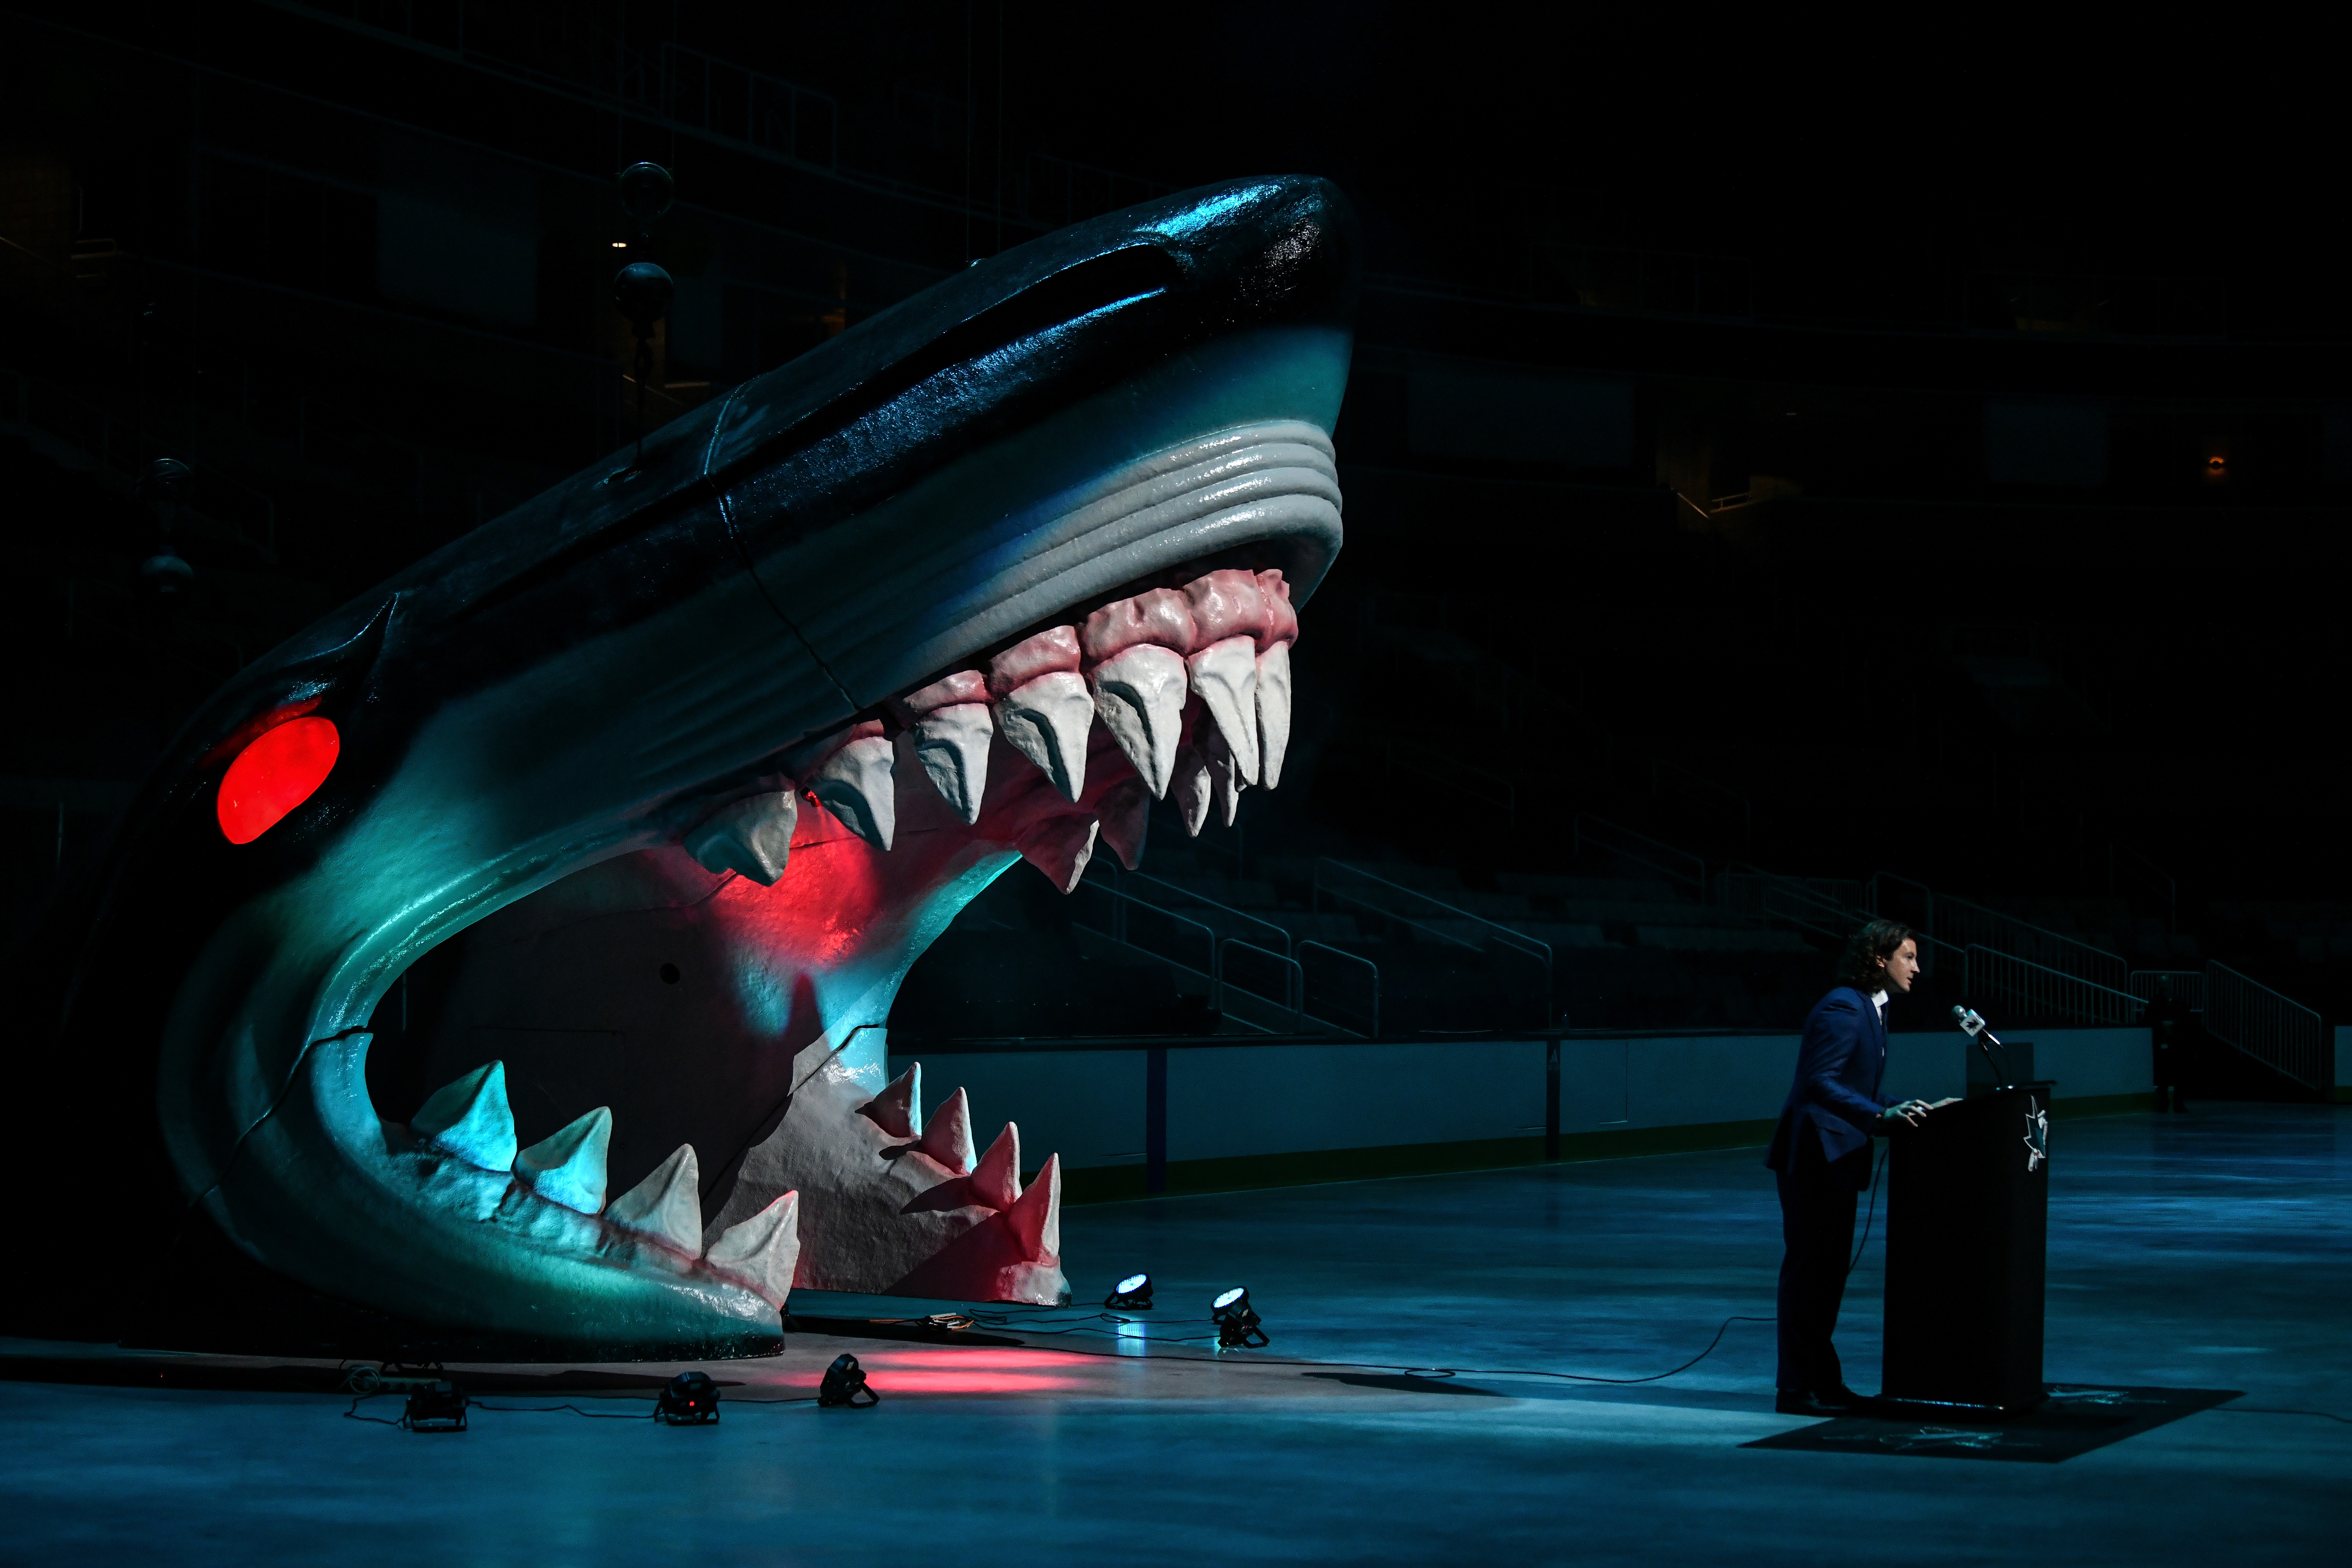 2021 NHL Draft SAN JOSE, CA - JULY 23: San Jose Sharks Director of Scouting Doug Wilson Jr. stands at the podium as the Sharks select William Eklund seventh overall in the first round during the 2021 NHL Draft at SAP Center on July 23, 2021 in San Jose, California.